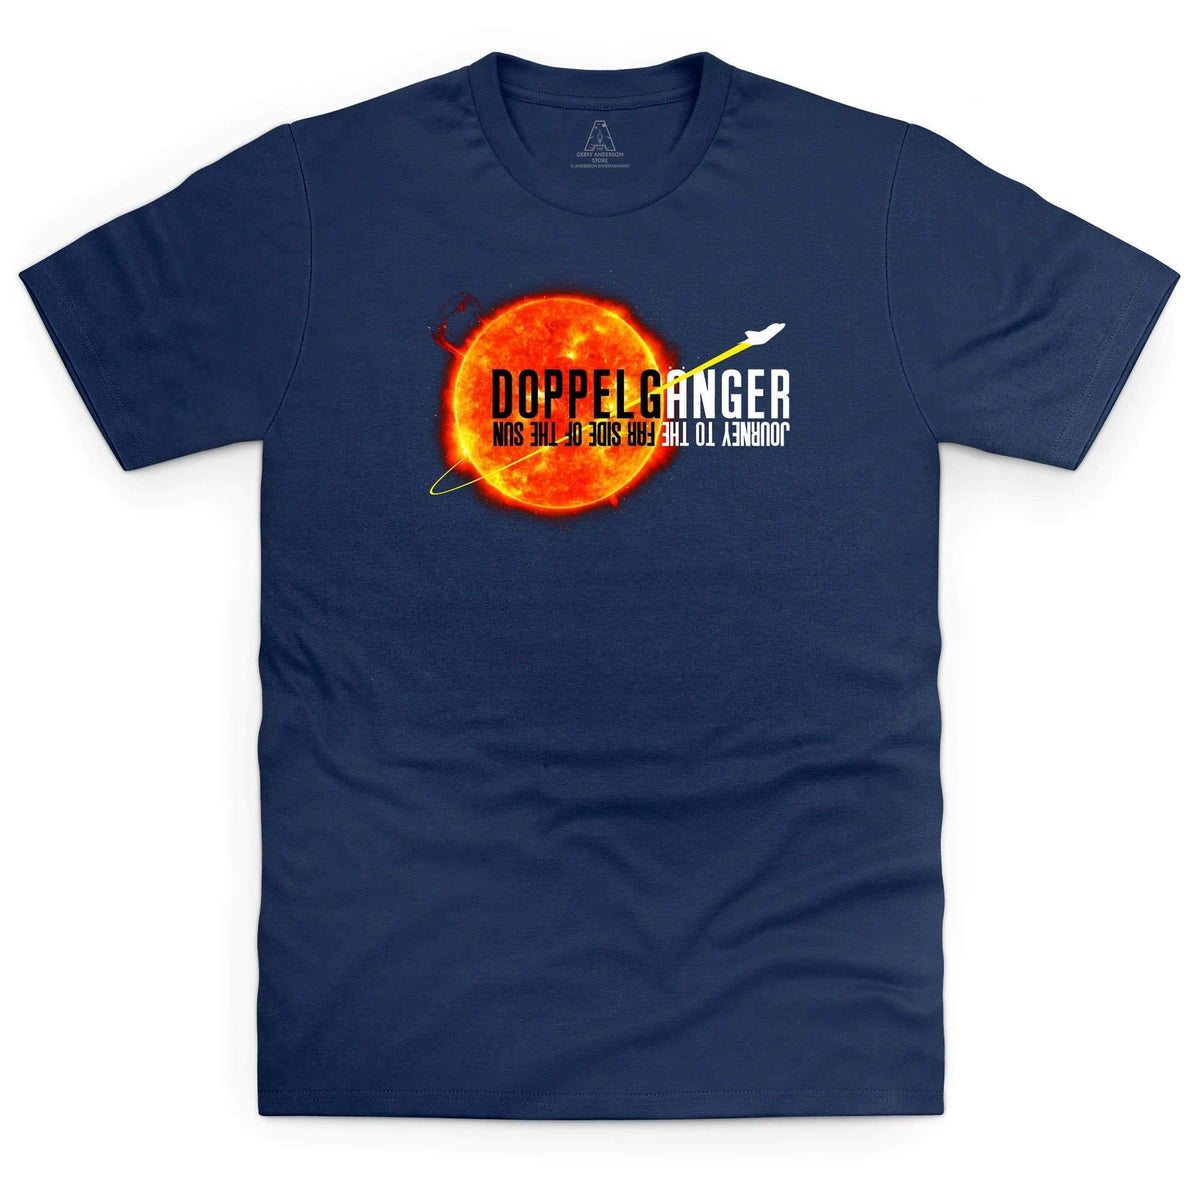 Doppelgänger Logo Men's T-shirt [Official & Exclusive] - The Gerry Anderson Store